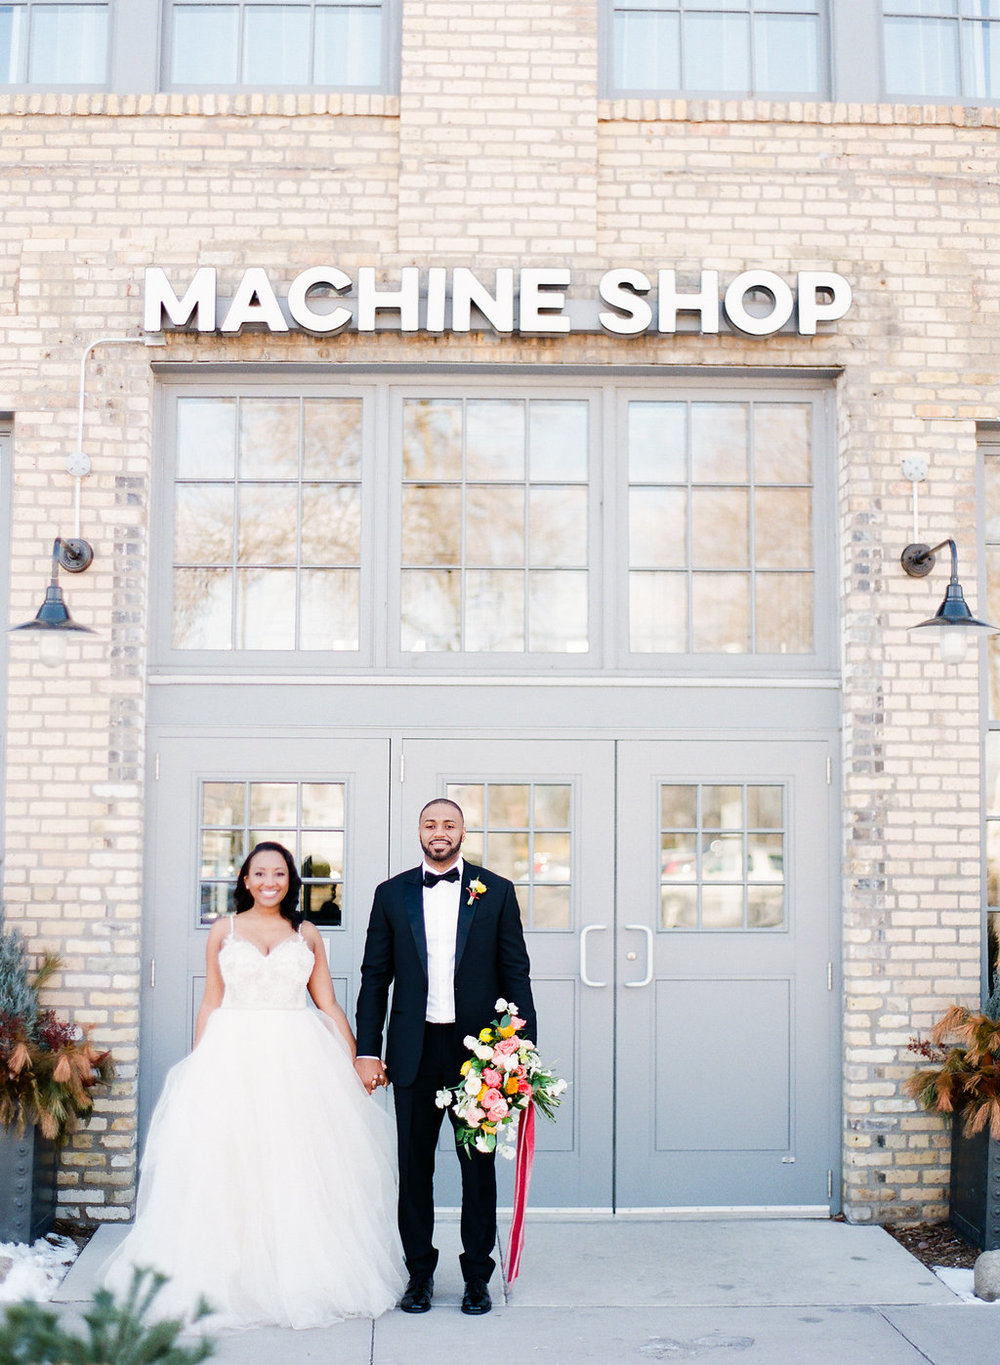 Machine Shop Styled Shoot